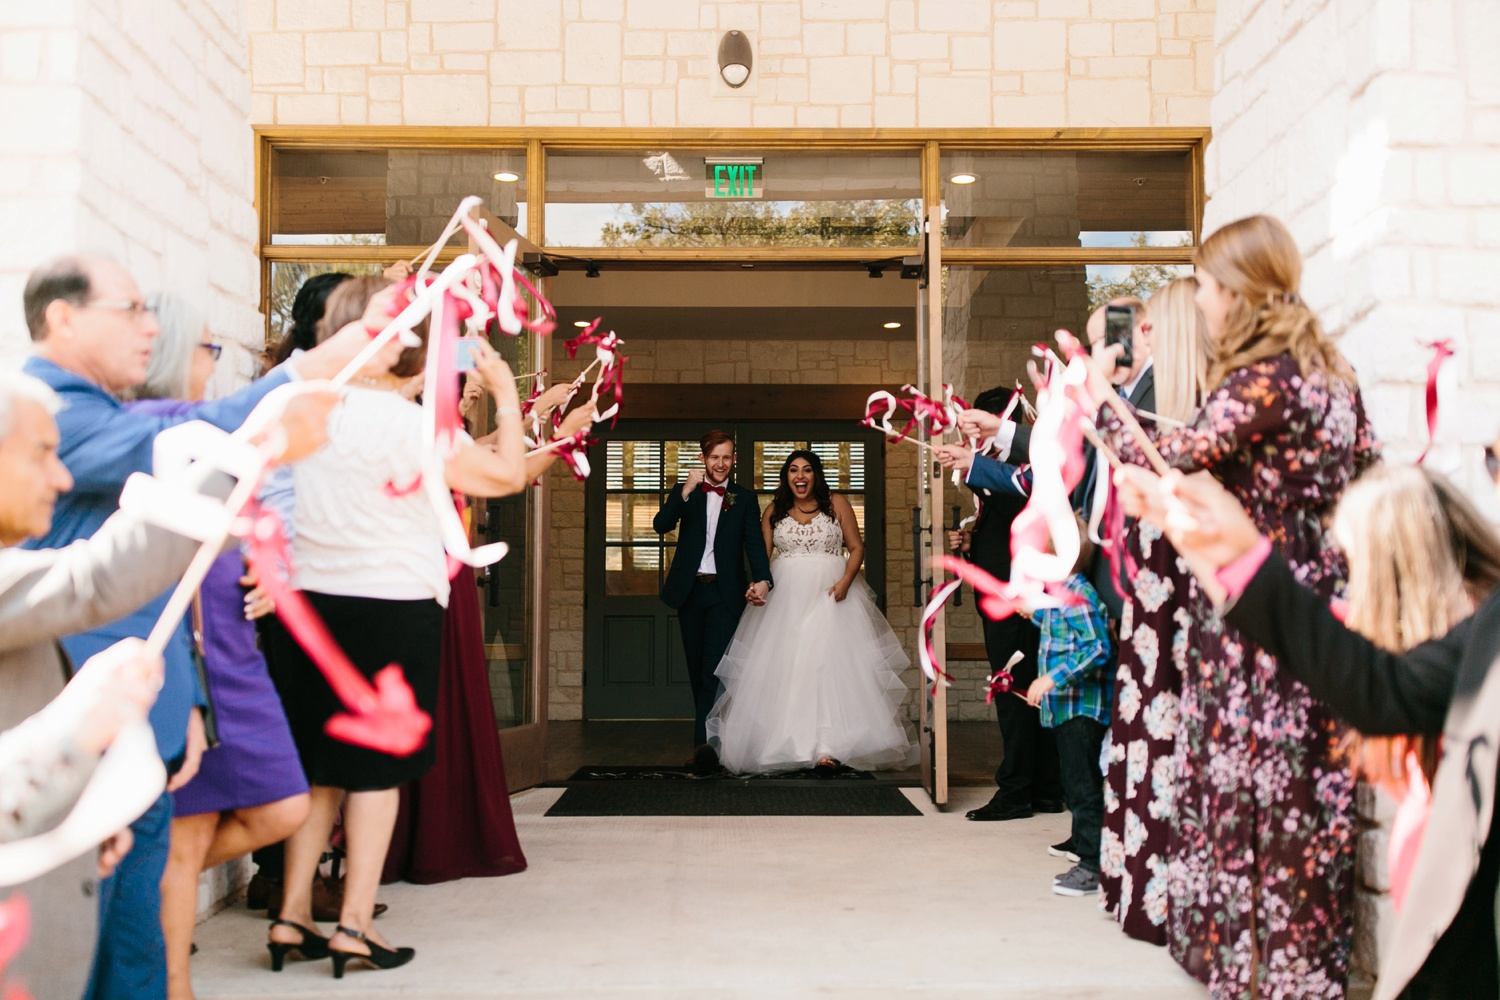 Grant + Lysette | a vibrant, deep burgundy and navy, and mixed metals wedding at Hidden Pines Chapel by North Texas Wedding Photographer Rachel Meagan Photography 189